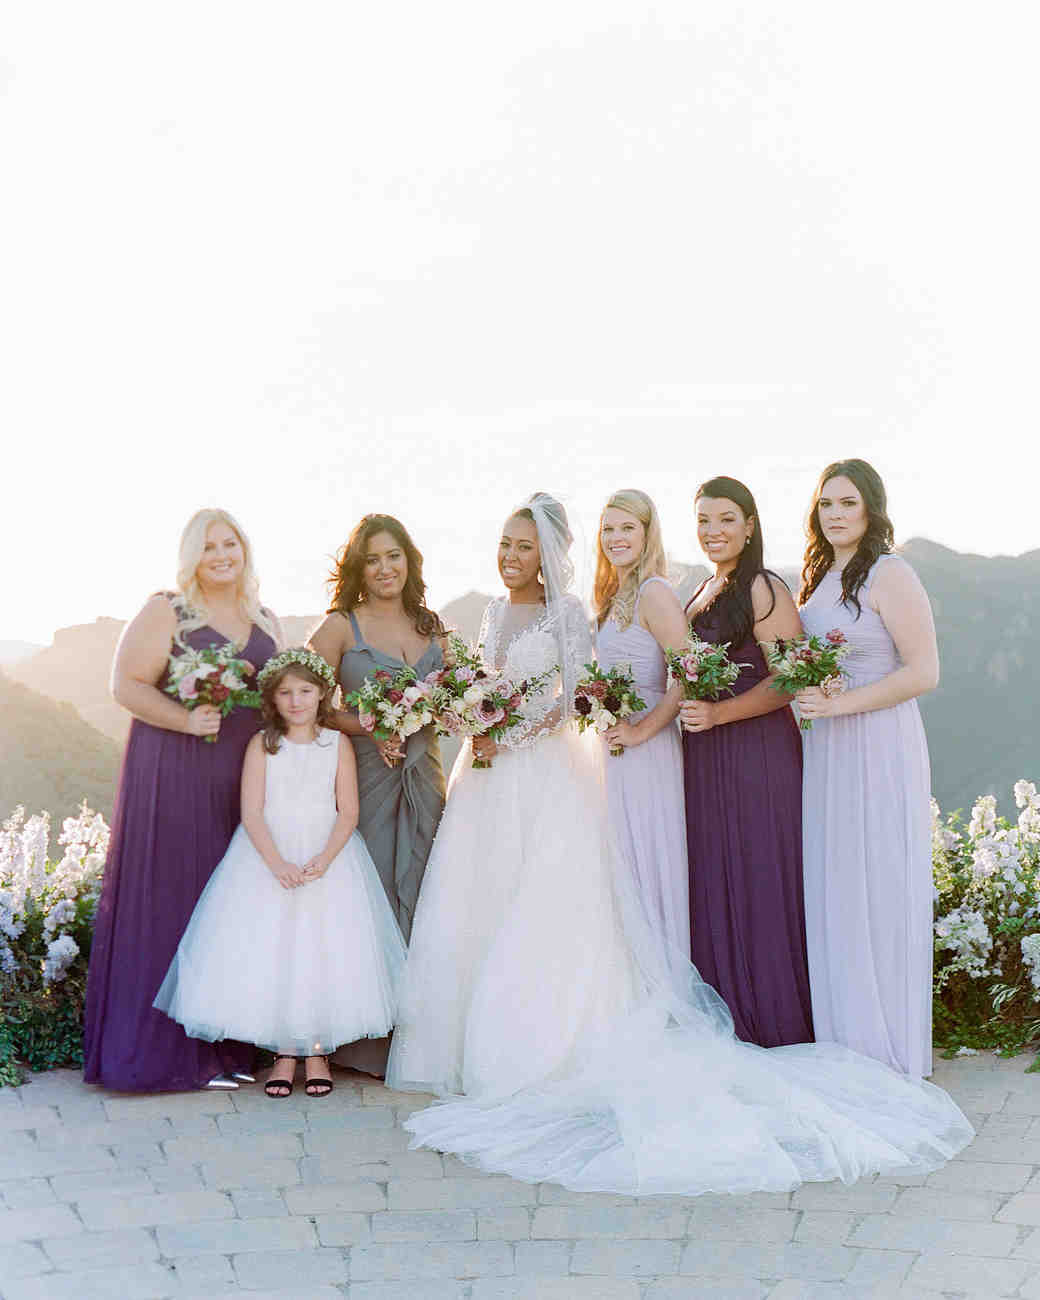 tillie dalton wedding bridesmaids